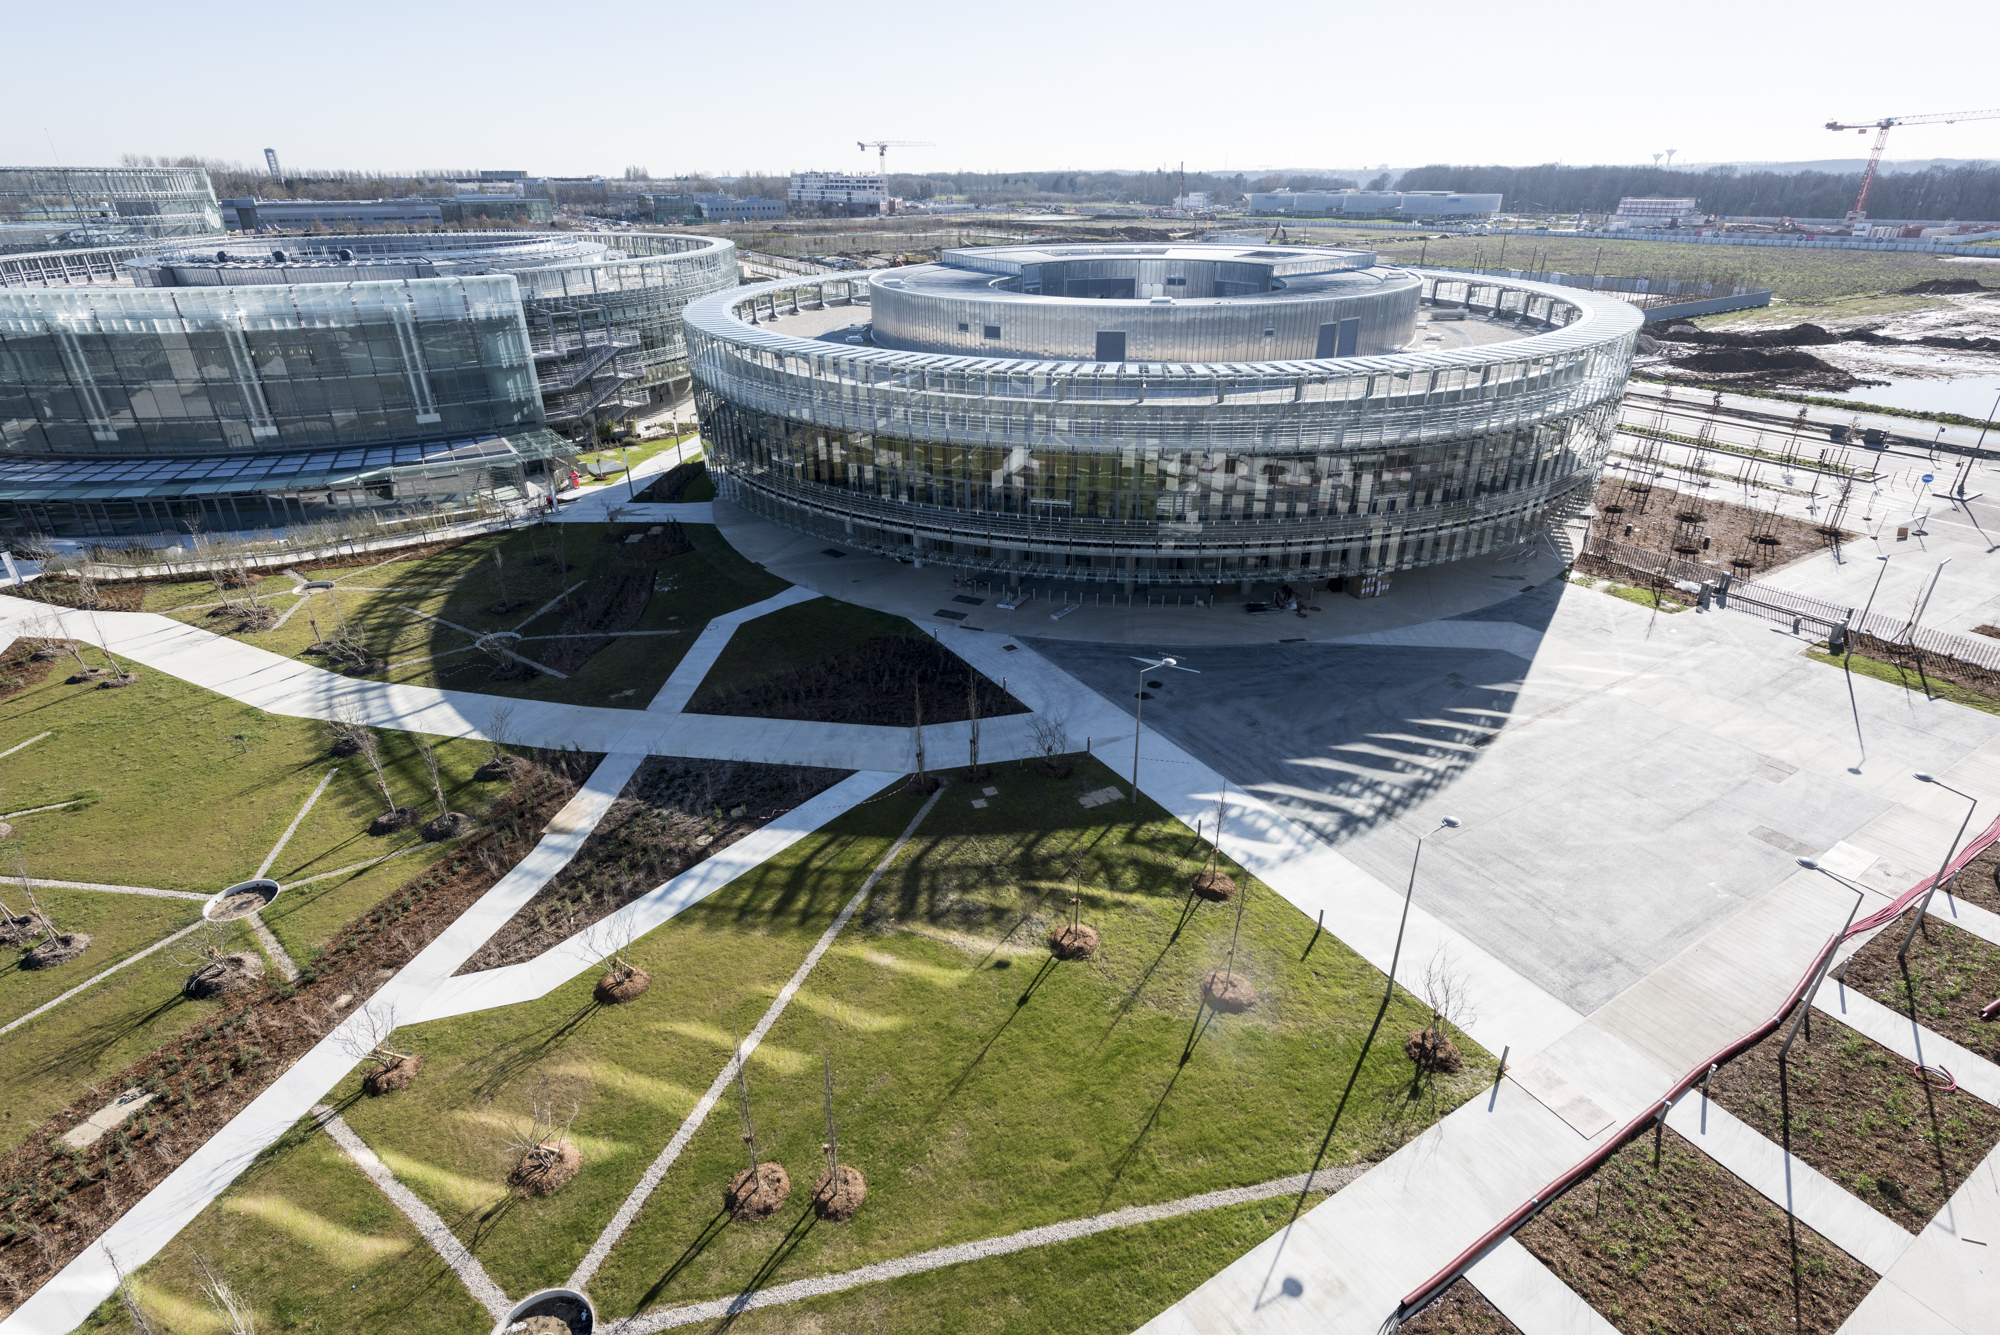 Paris-Saclay ou l'innovation ouverte